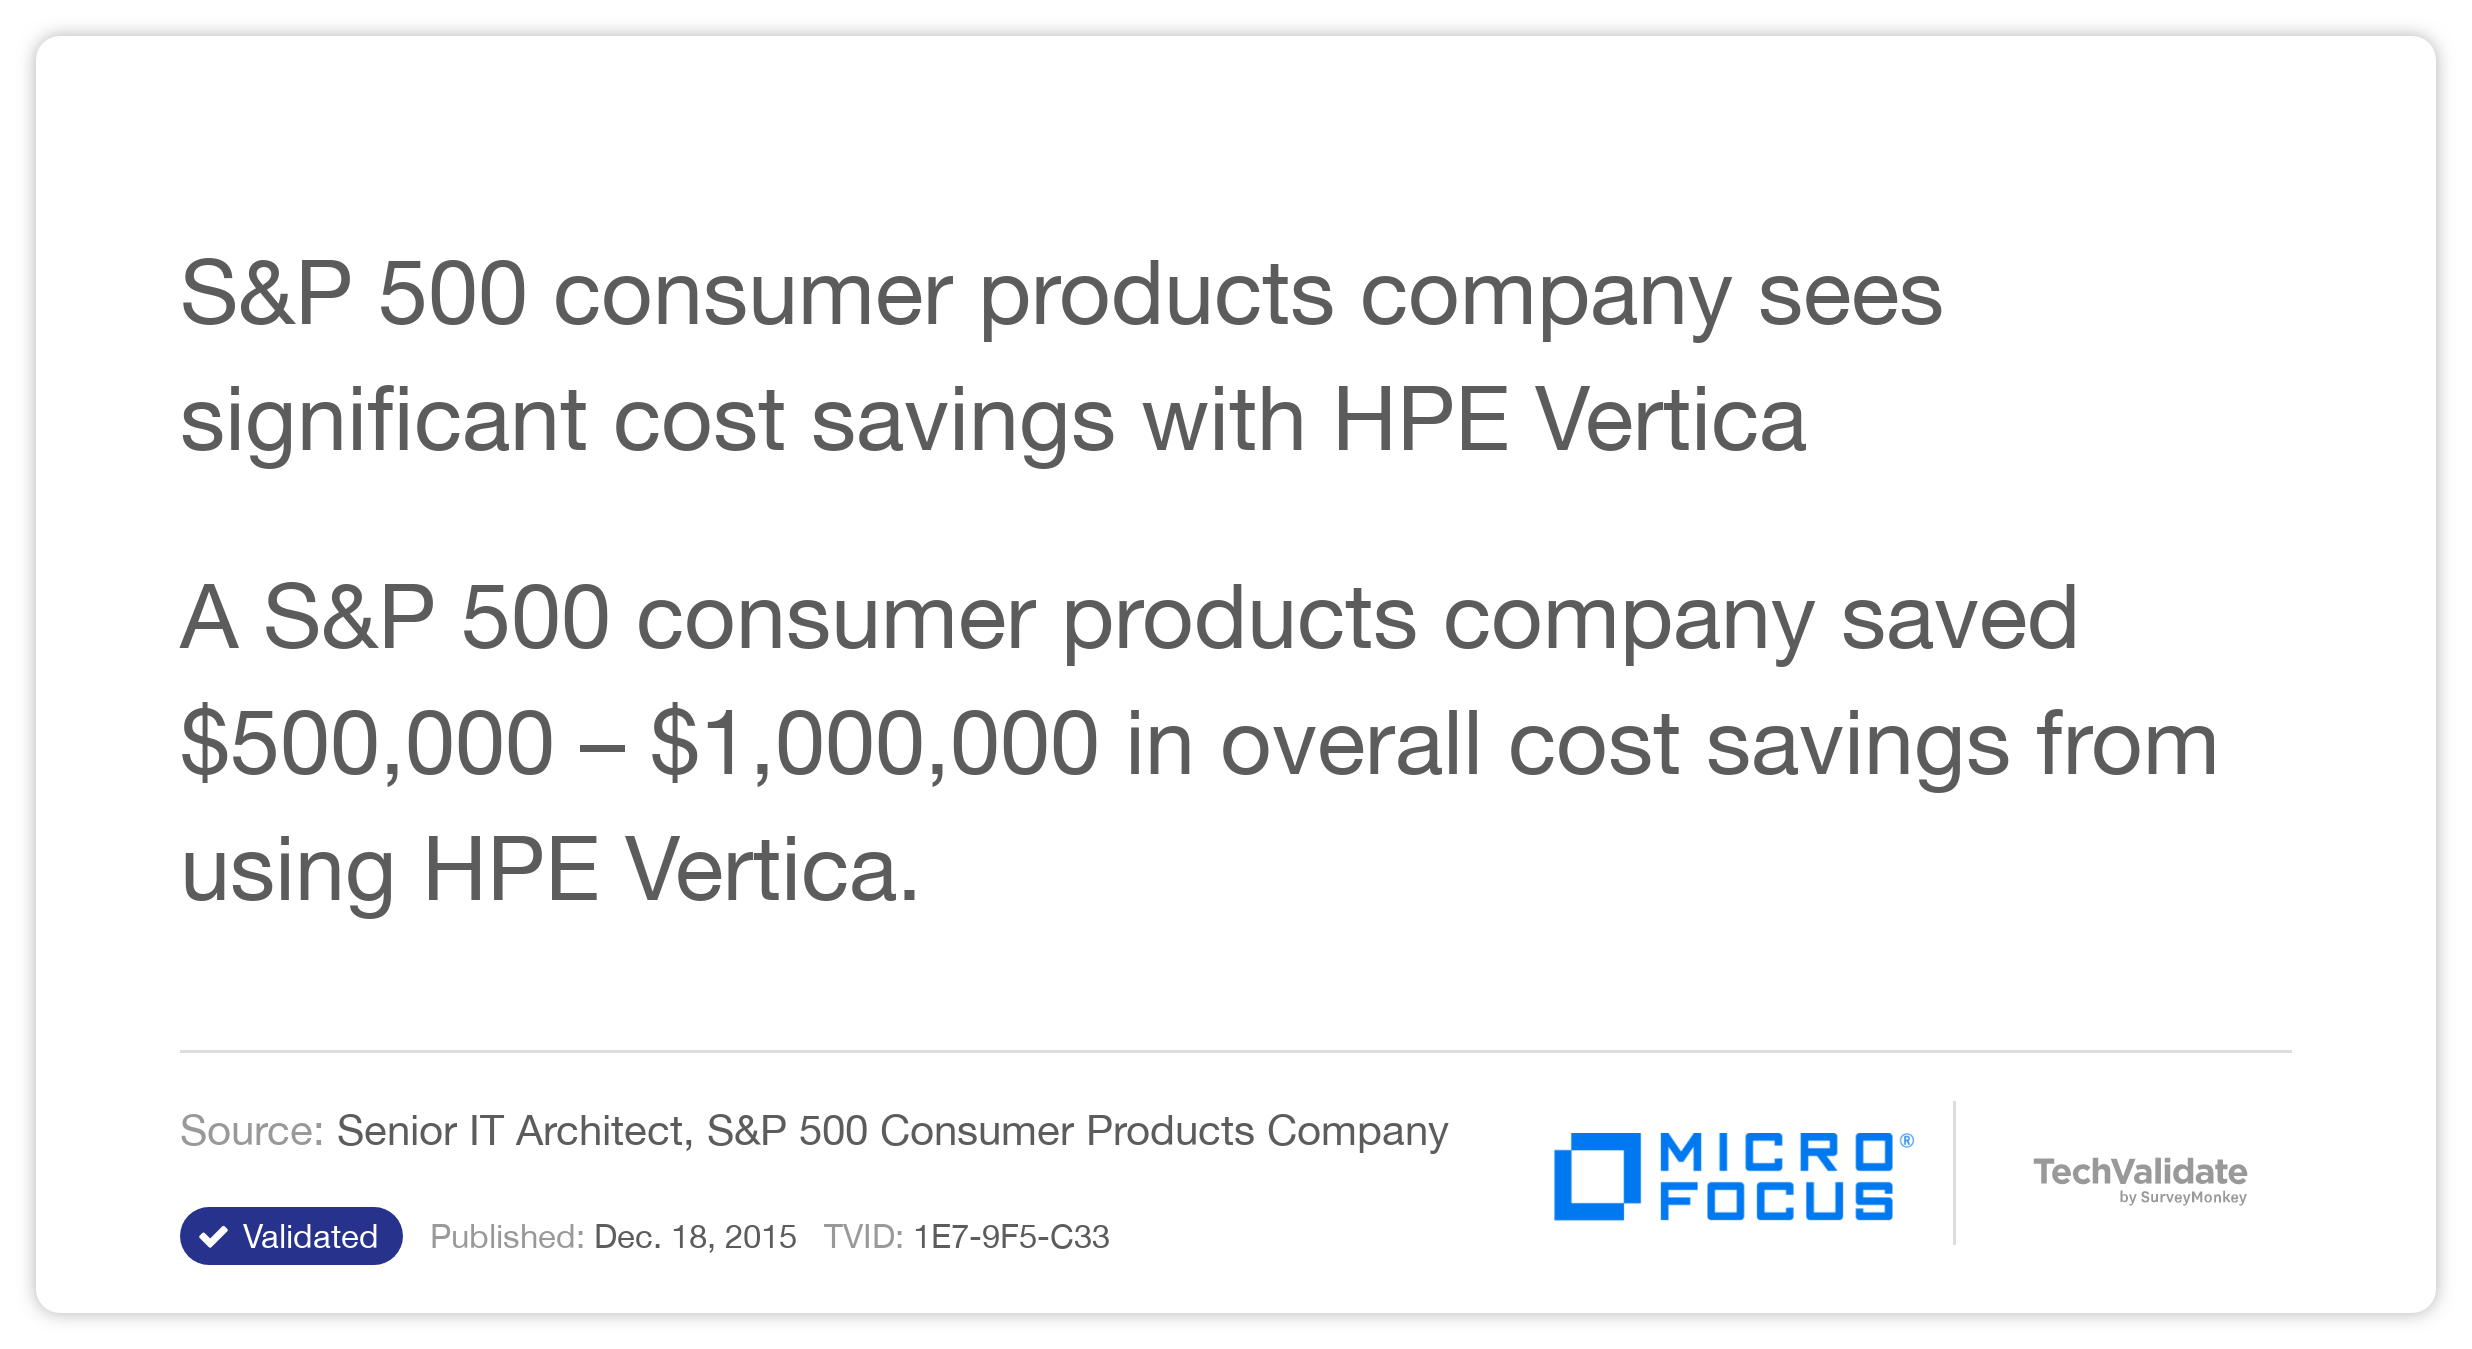 S&P 500 consumer products company sees significant cost savings with HP Vertica